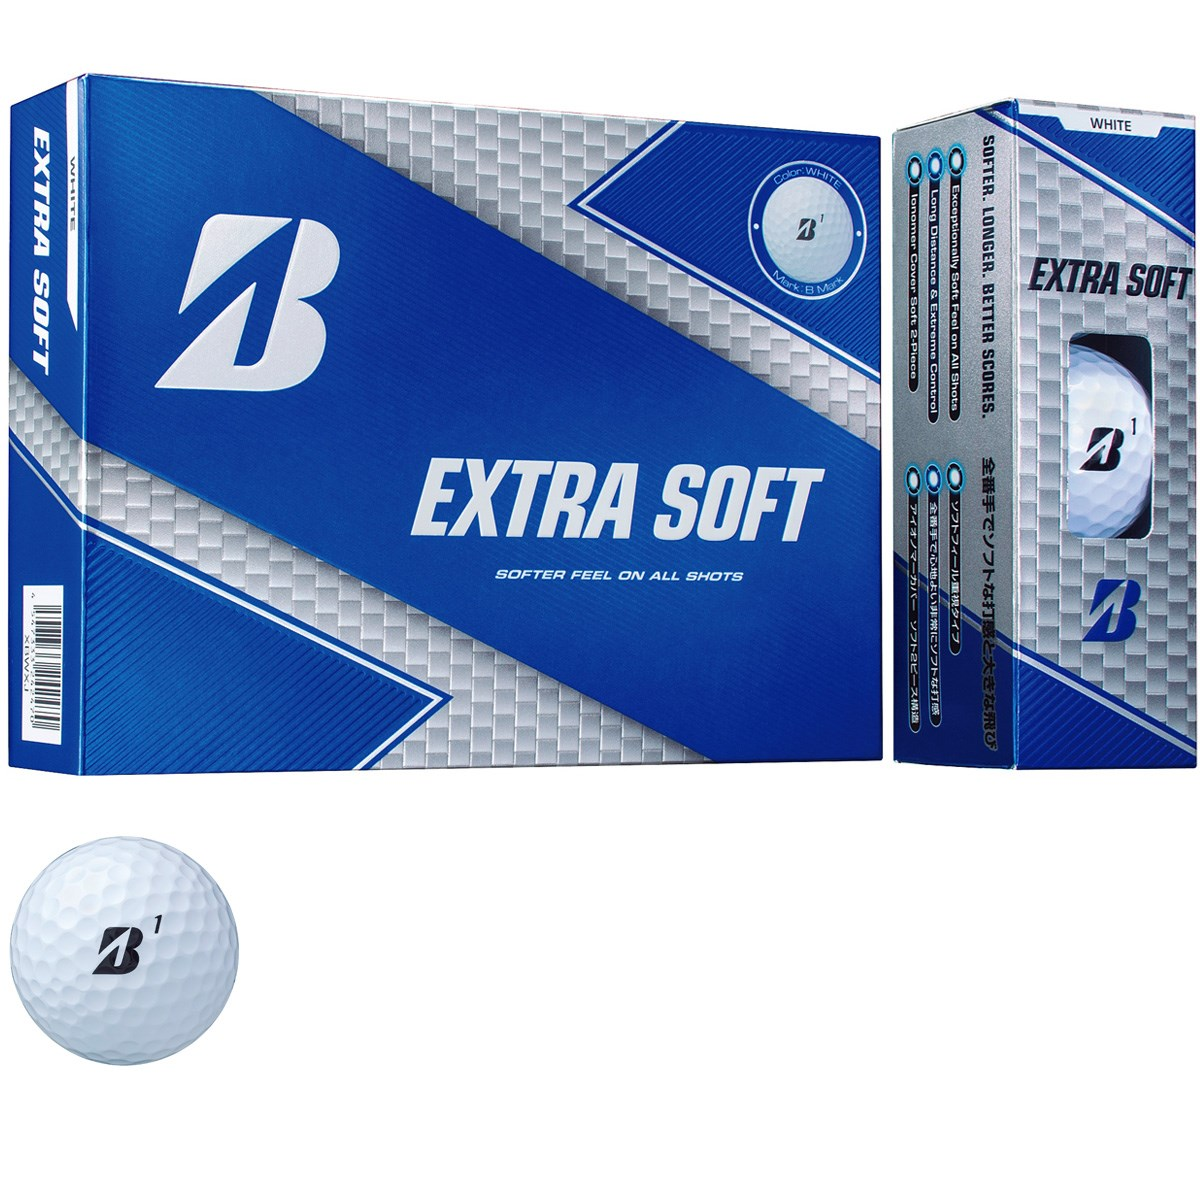 ブリヂストン(BRIDGESTONE GOLF) EXTRA SOFT ボール